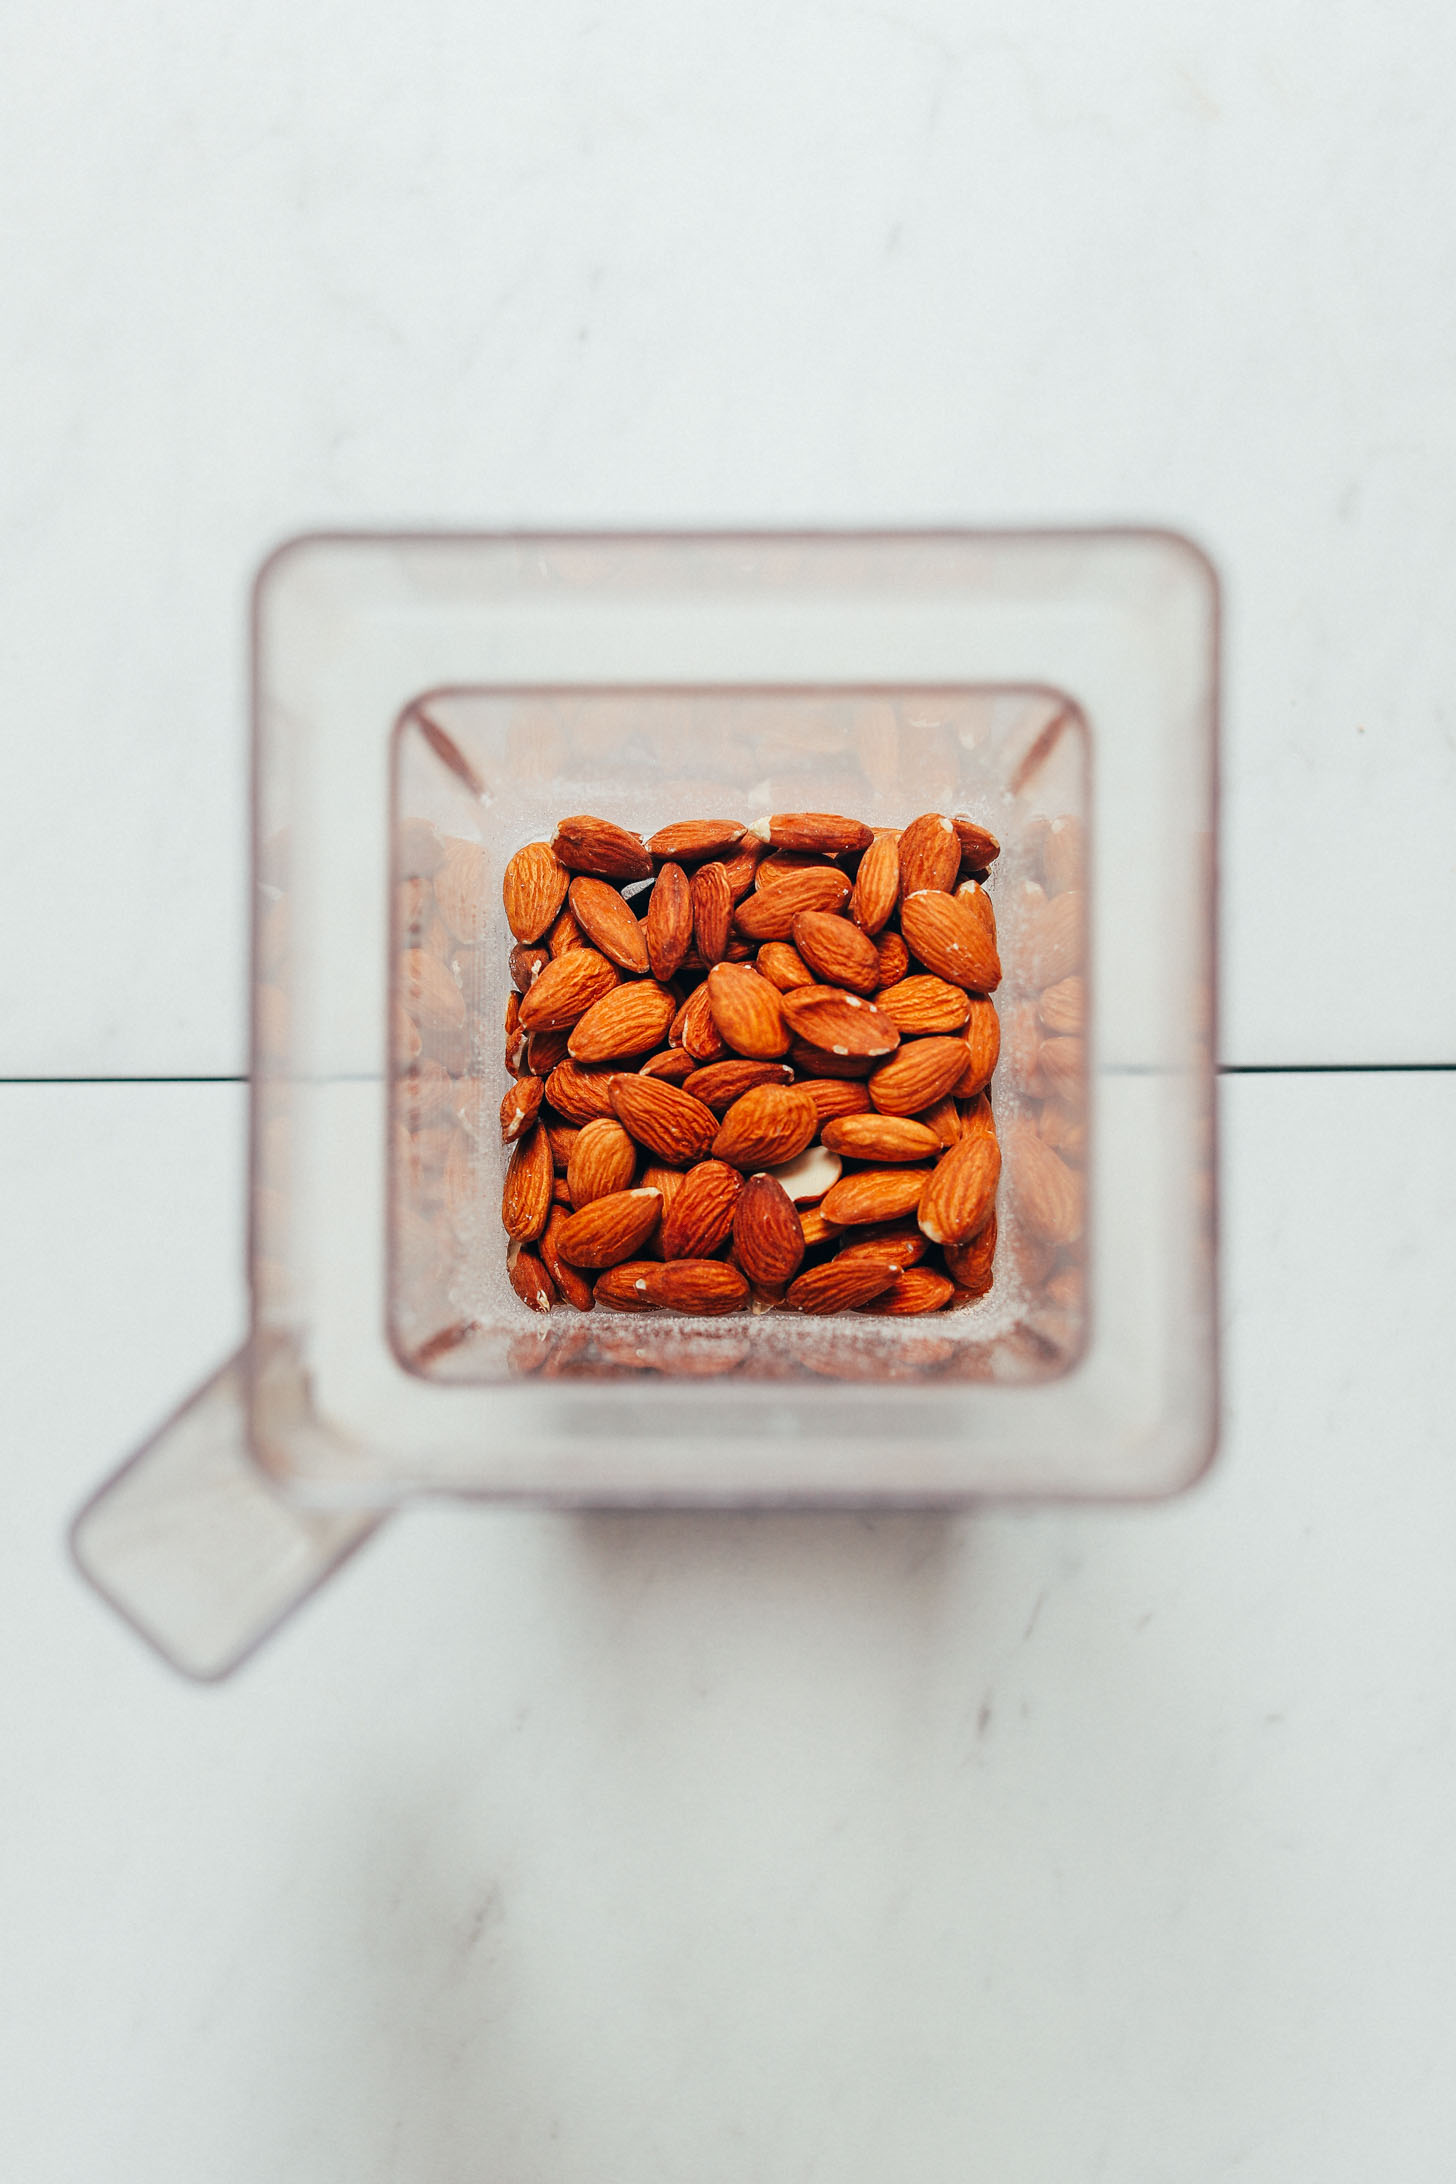 Blender filled with raw whole almonds for making almond meal